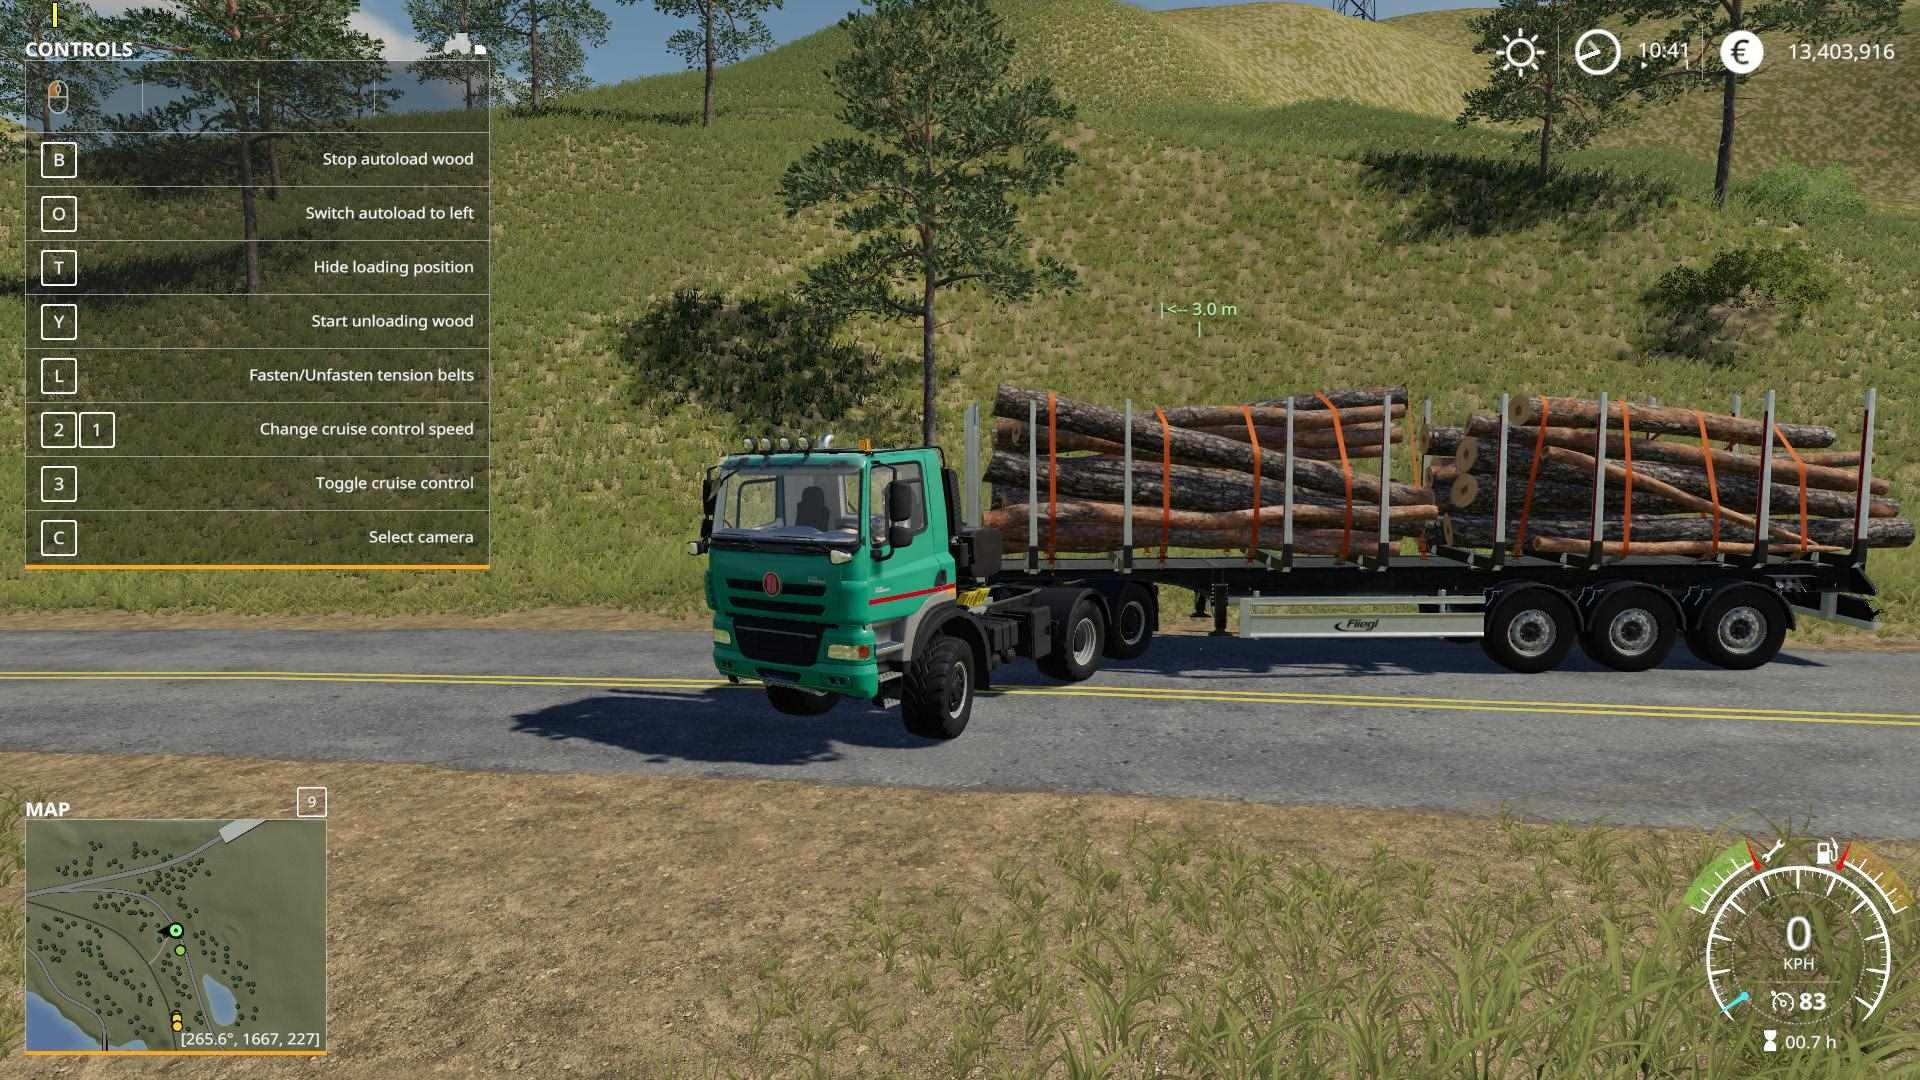 Fliegl Timber Runner With Autoload Wood v1 0 - Modhub us